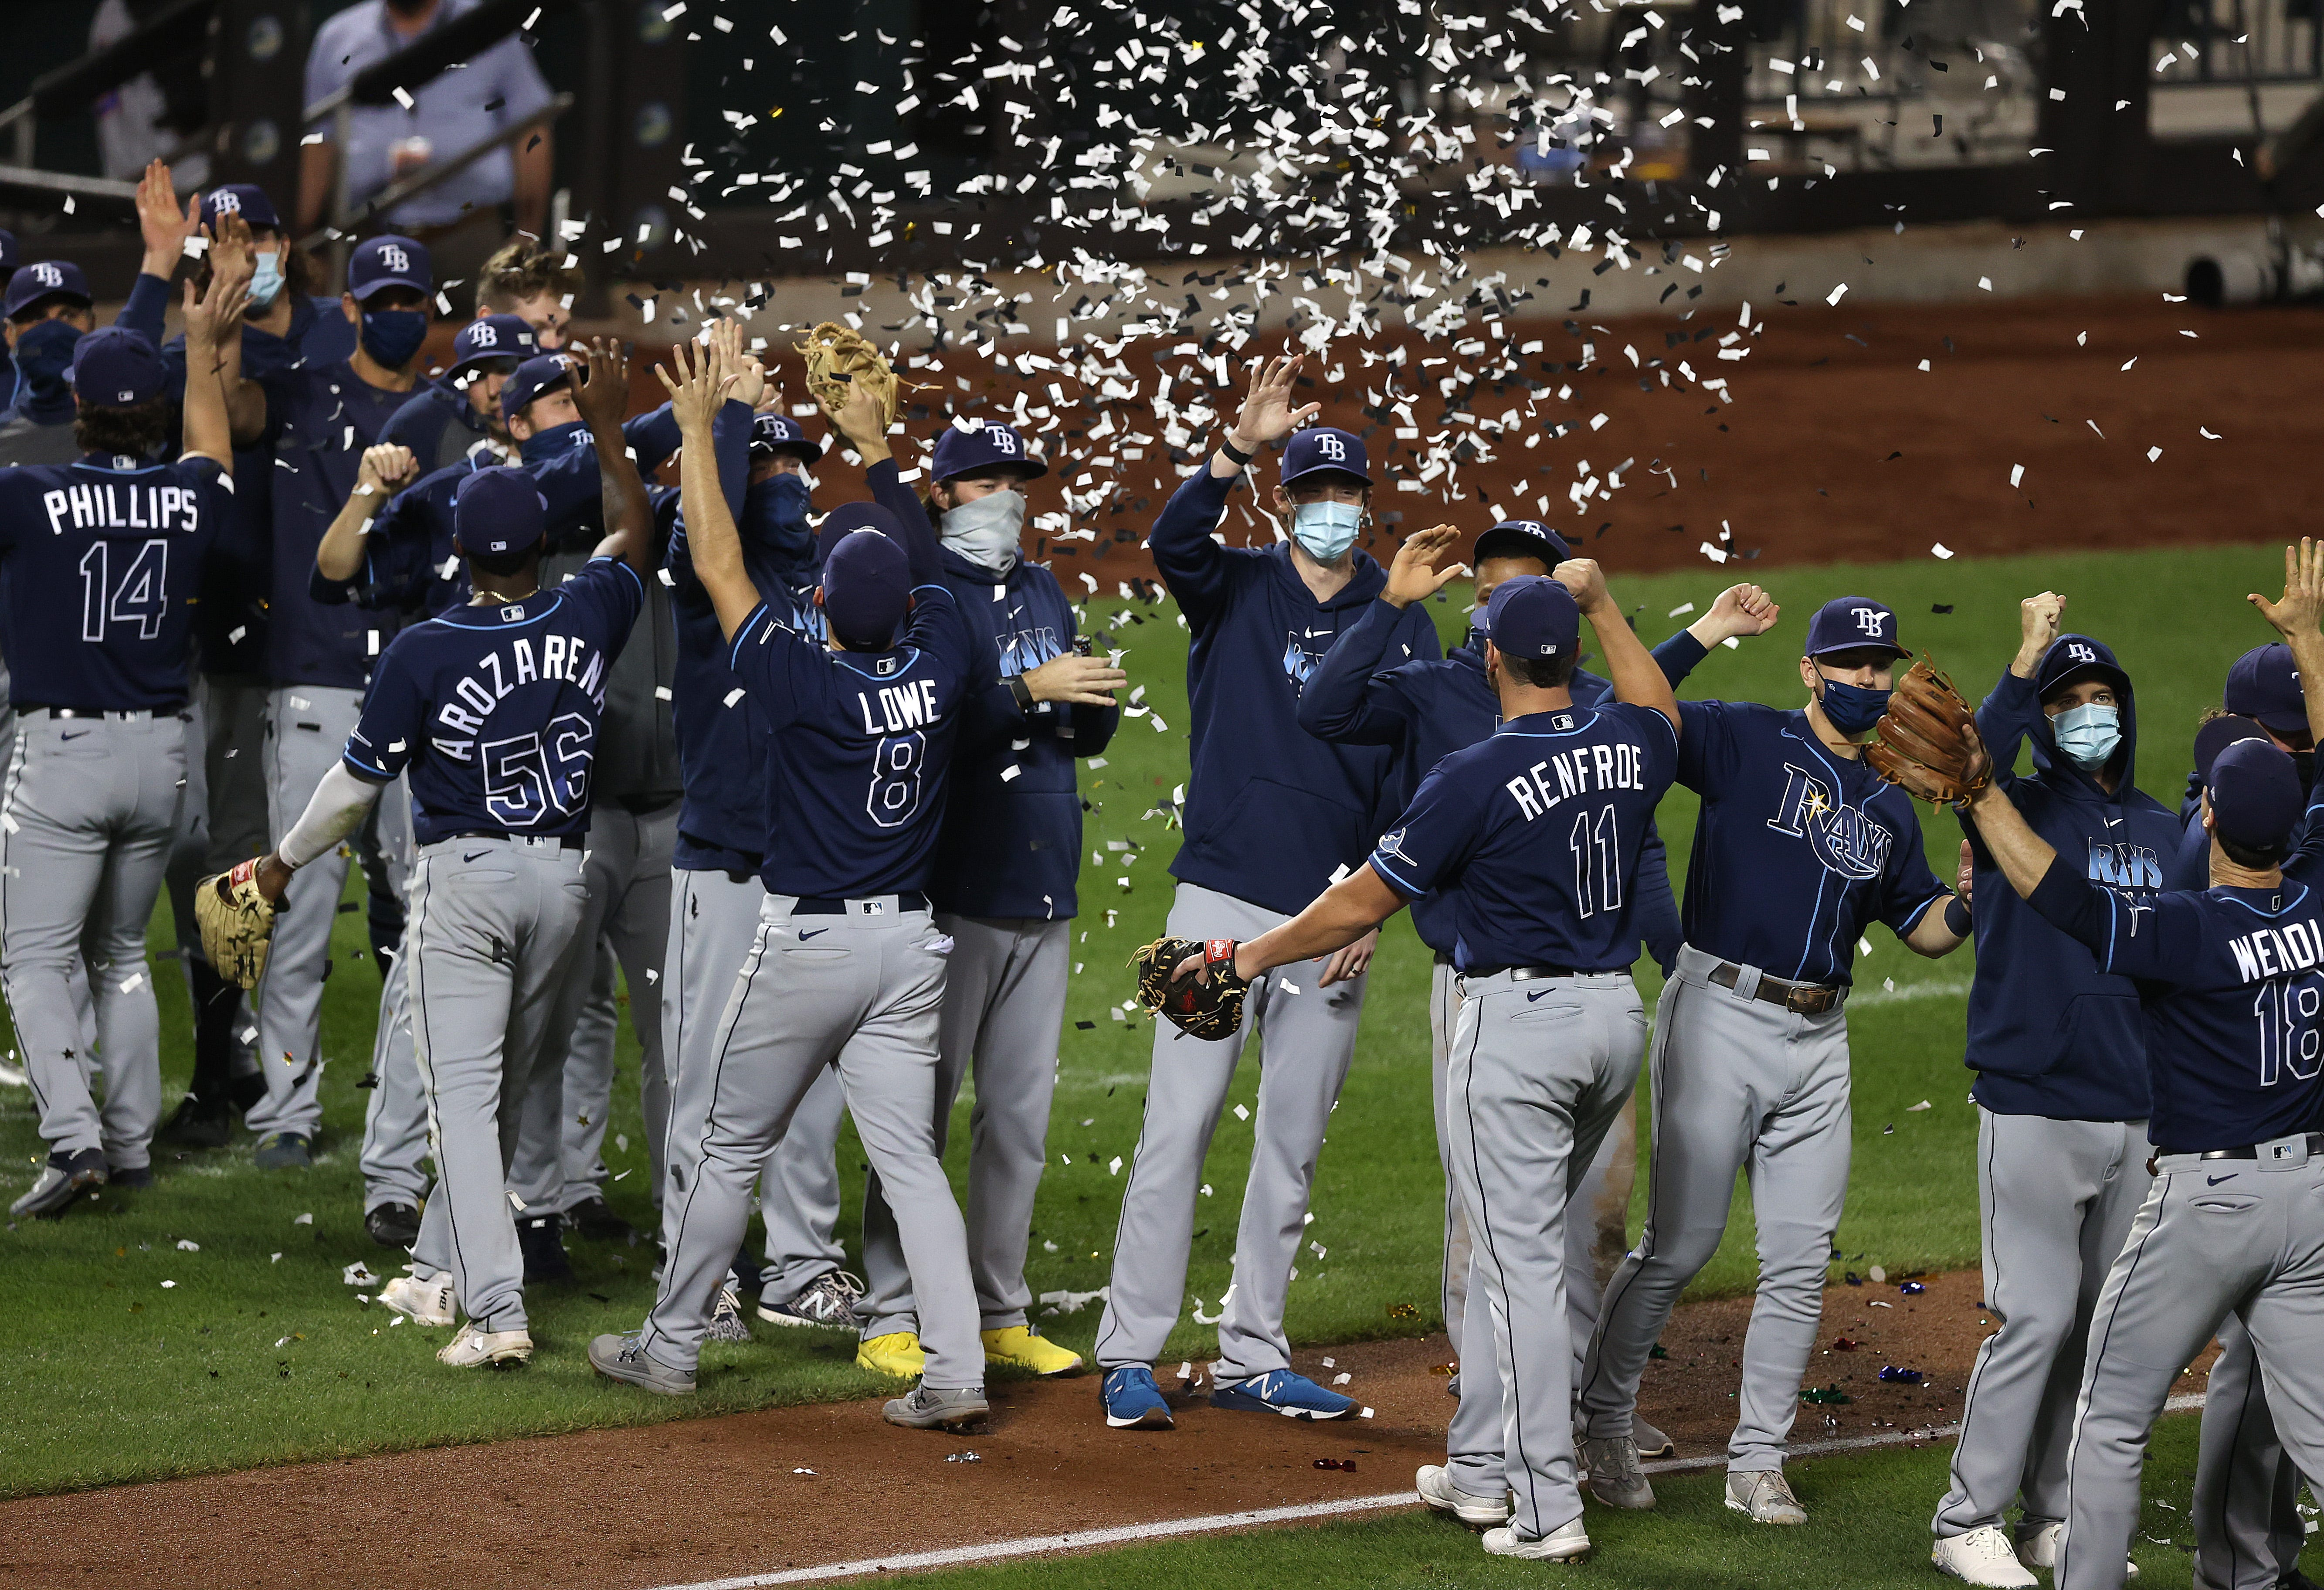 Rays celebrate first AL East title since 2010 by dancing the night away at Citi Field